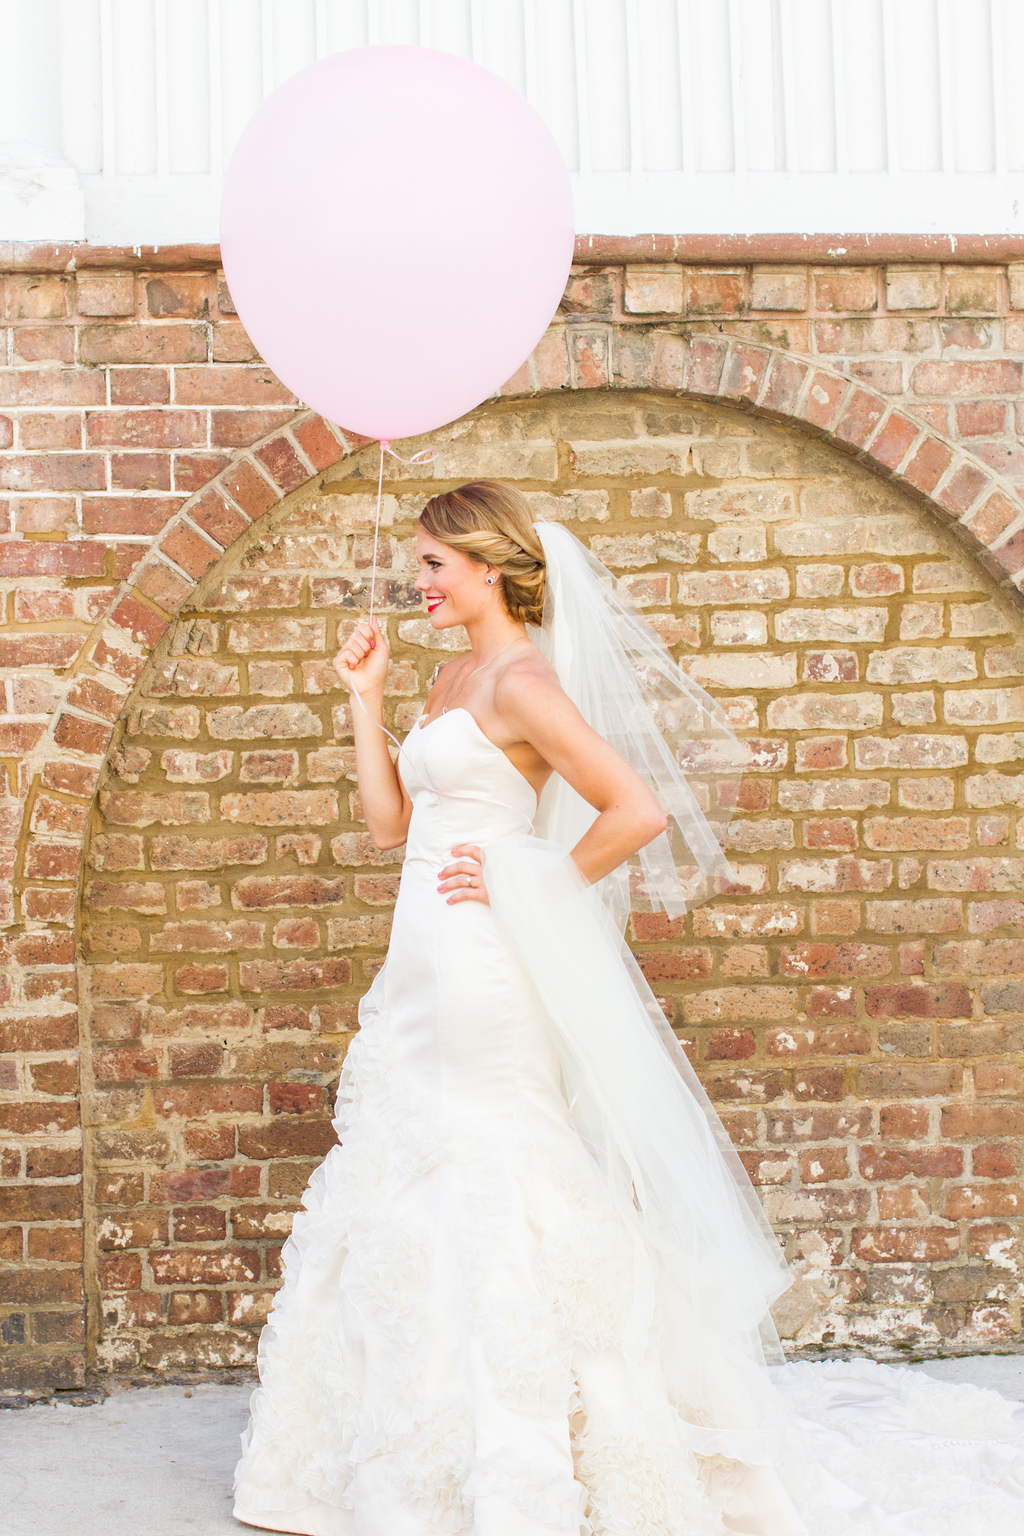 Classic-beautiful-bride-poses-with-pale-pink-balloon.full